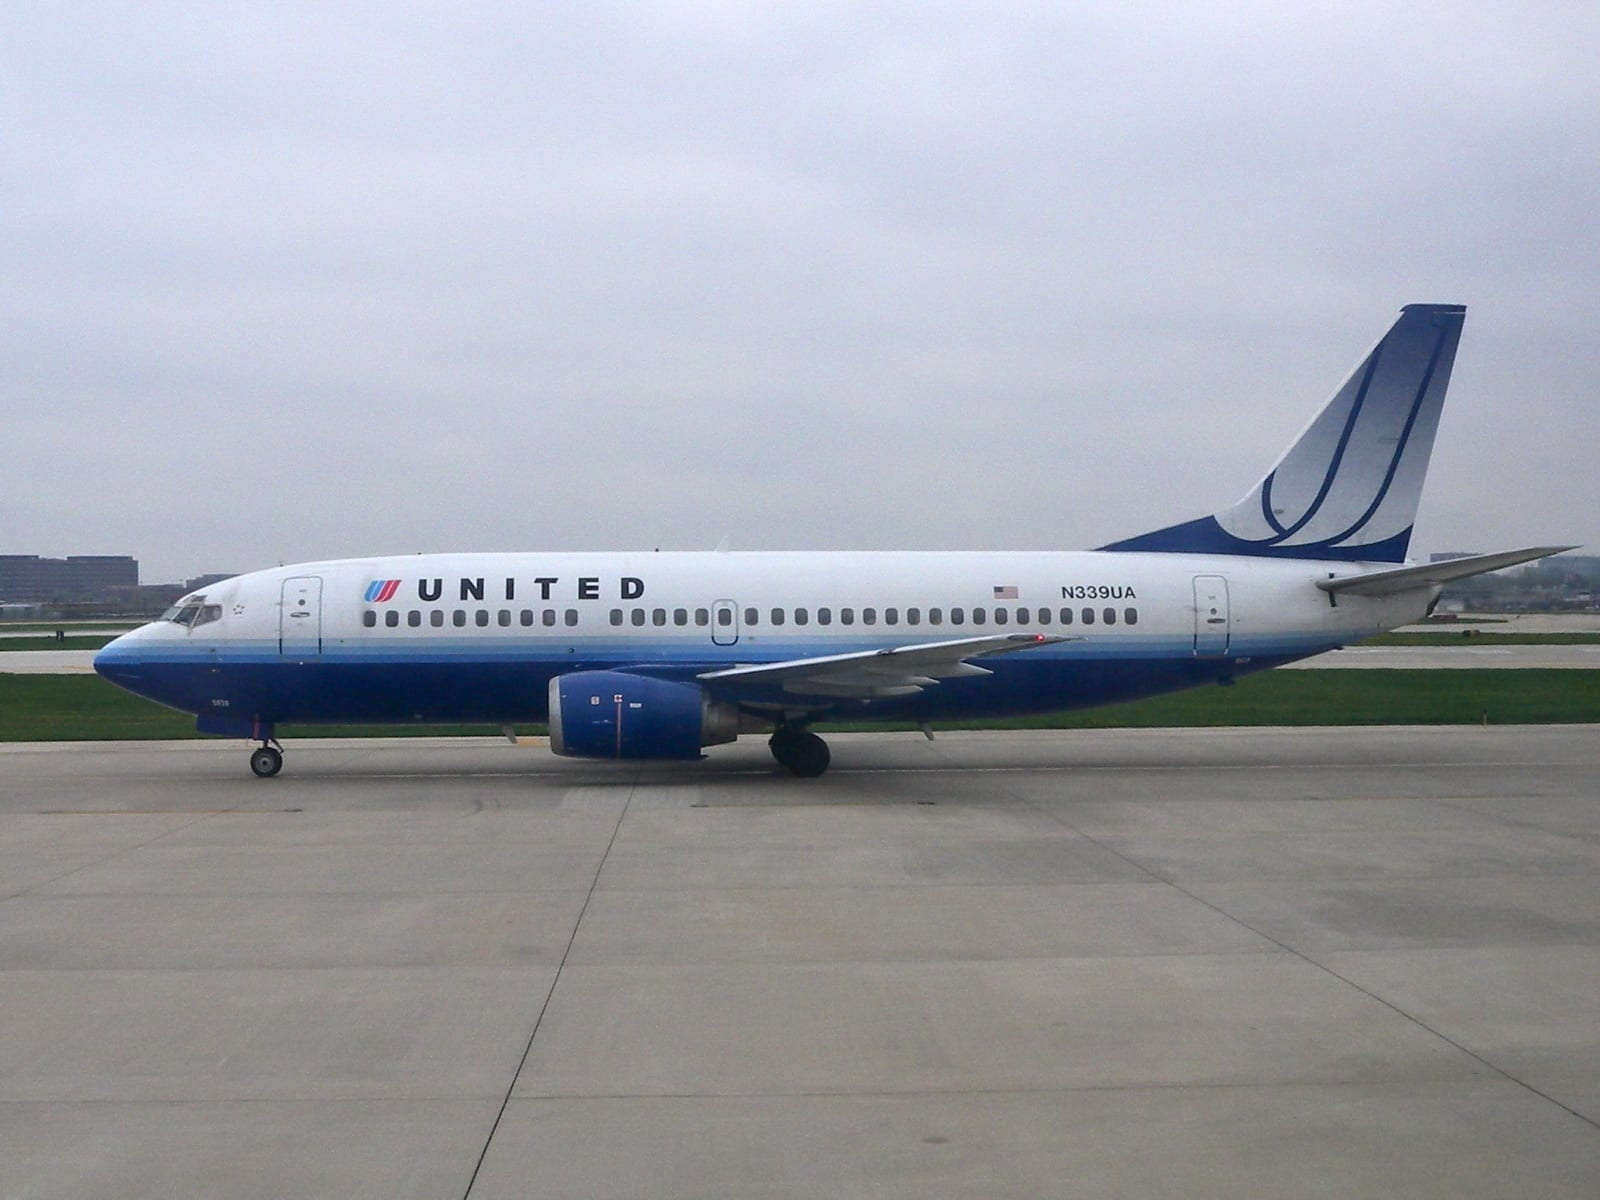 A United Airlines plane; image by Cliff (originally posted to Flickr as United Airlines), CC BY 2.0, via Wikimedia Commons, no changes.